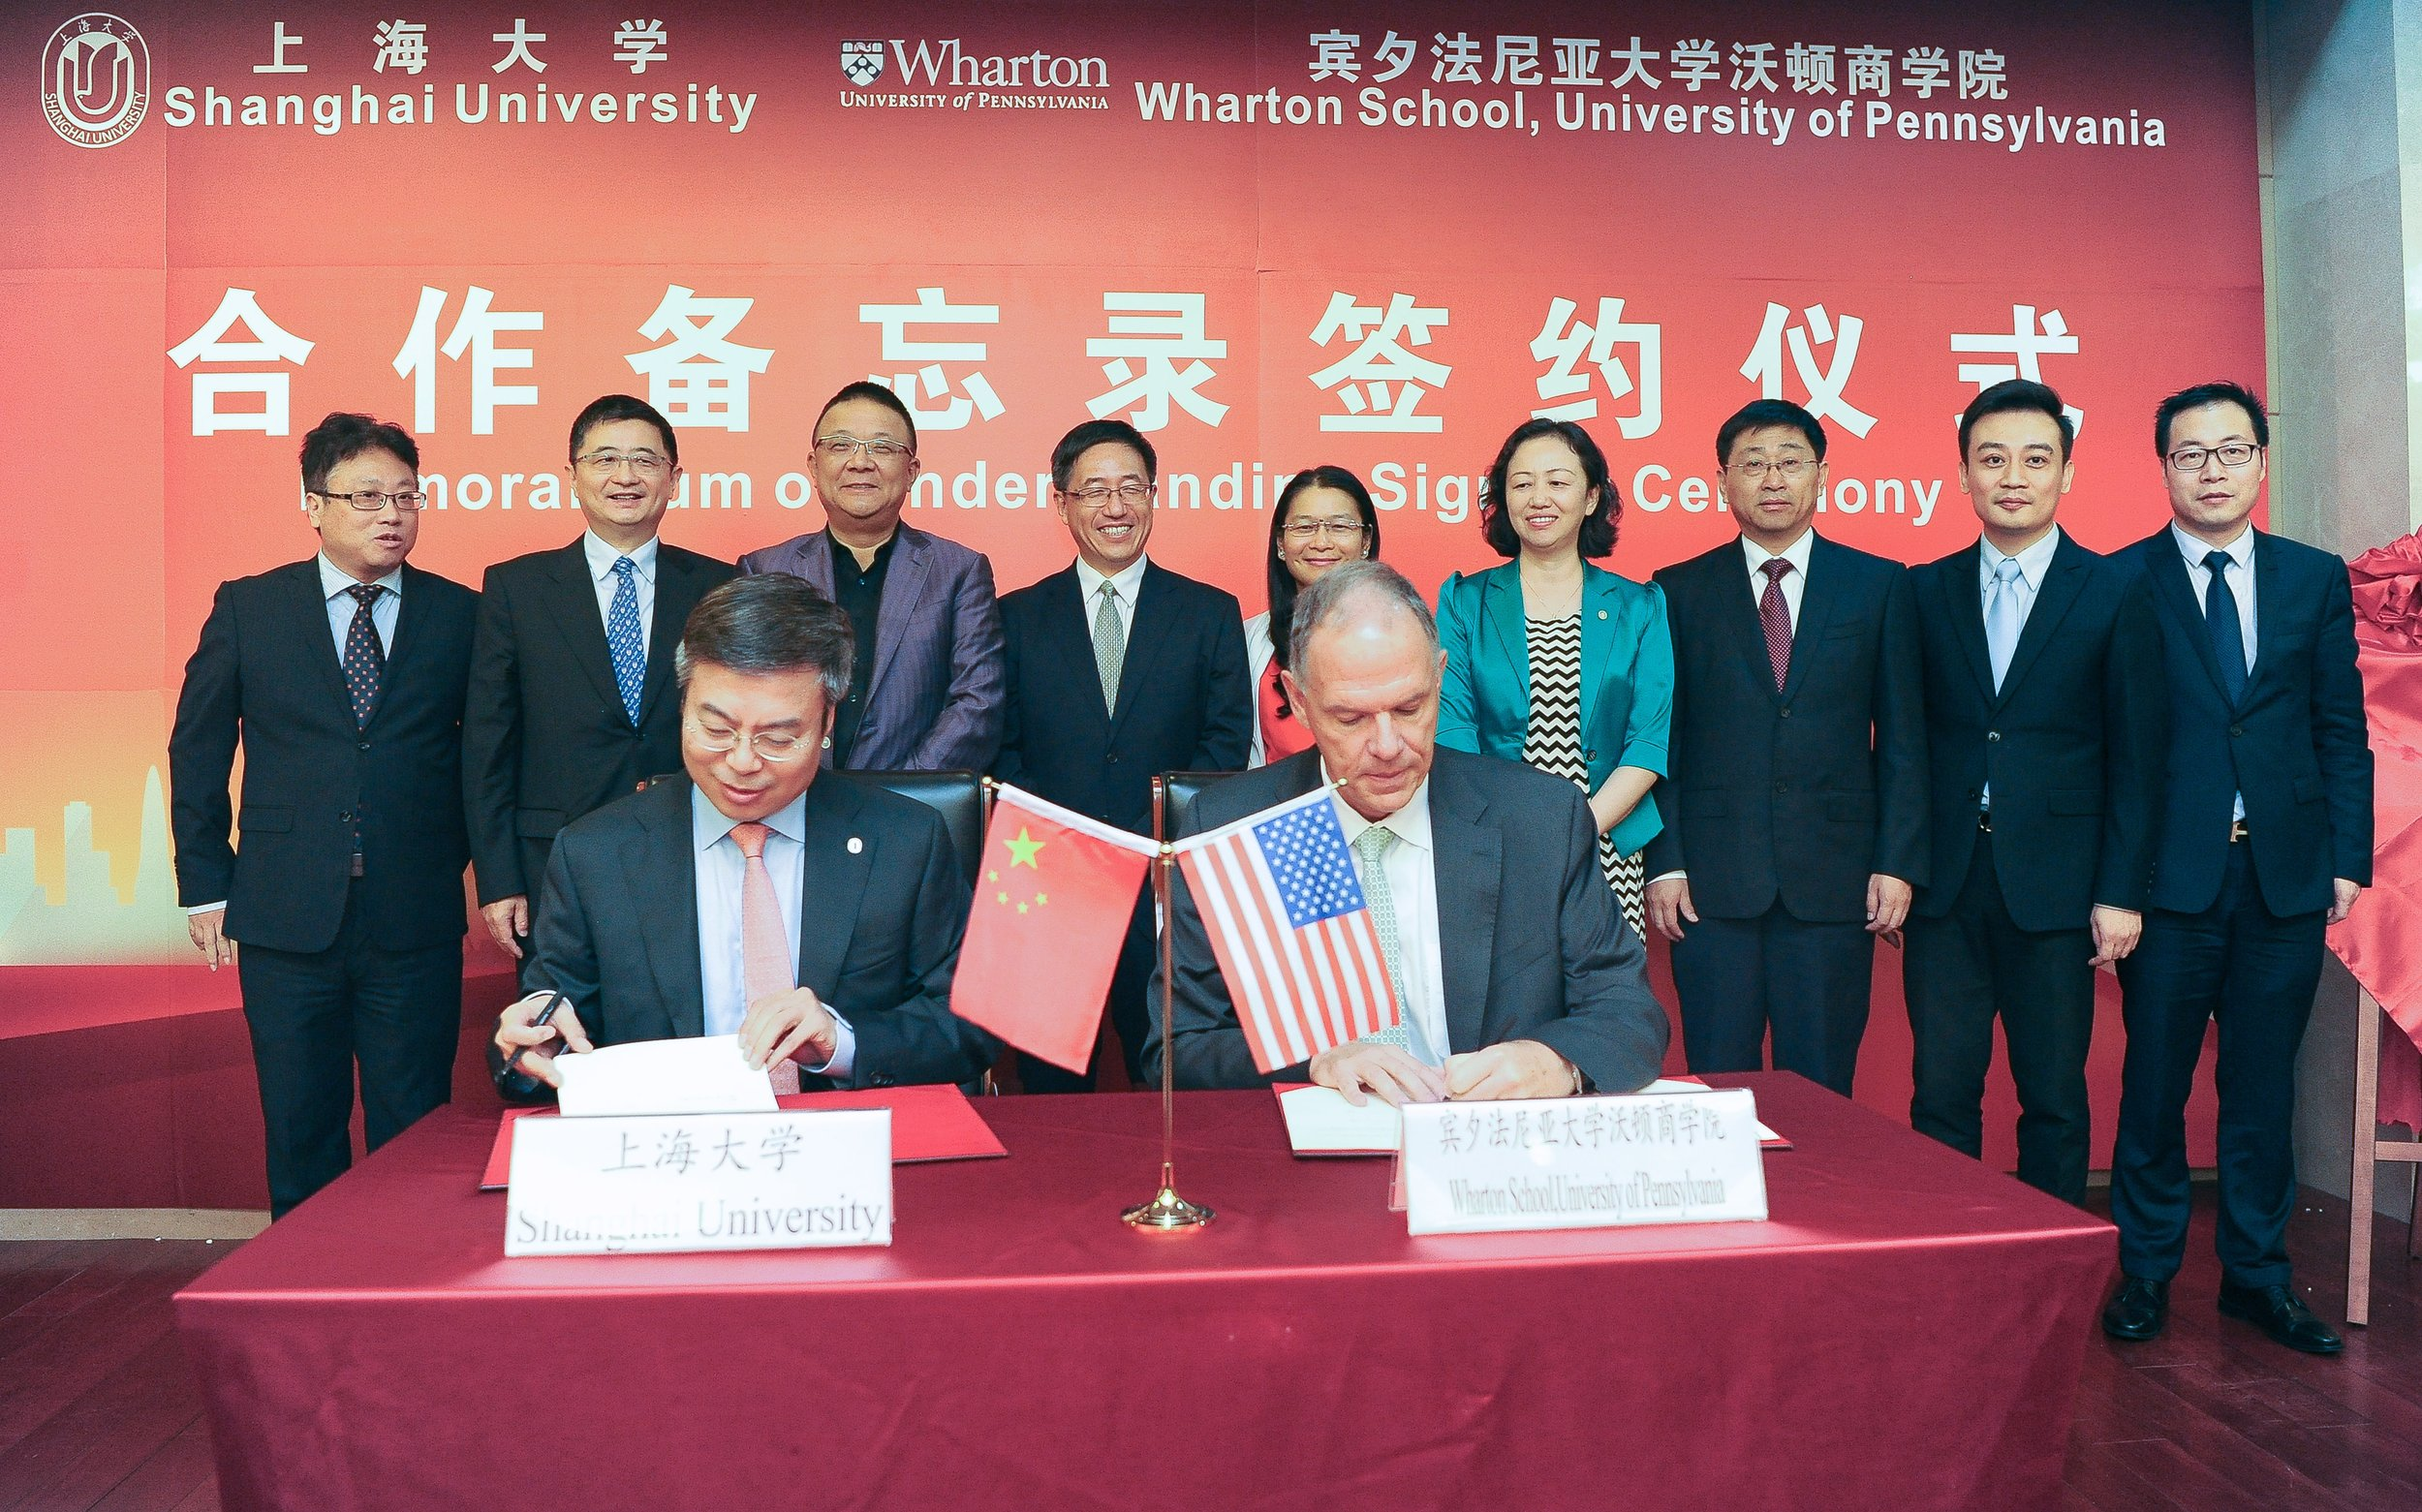 Wharton School and Shanghai University Cooperation Agreement to Expand International Reach.